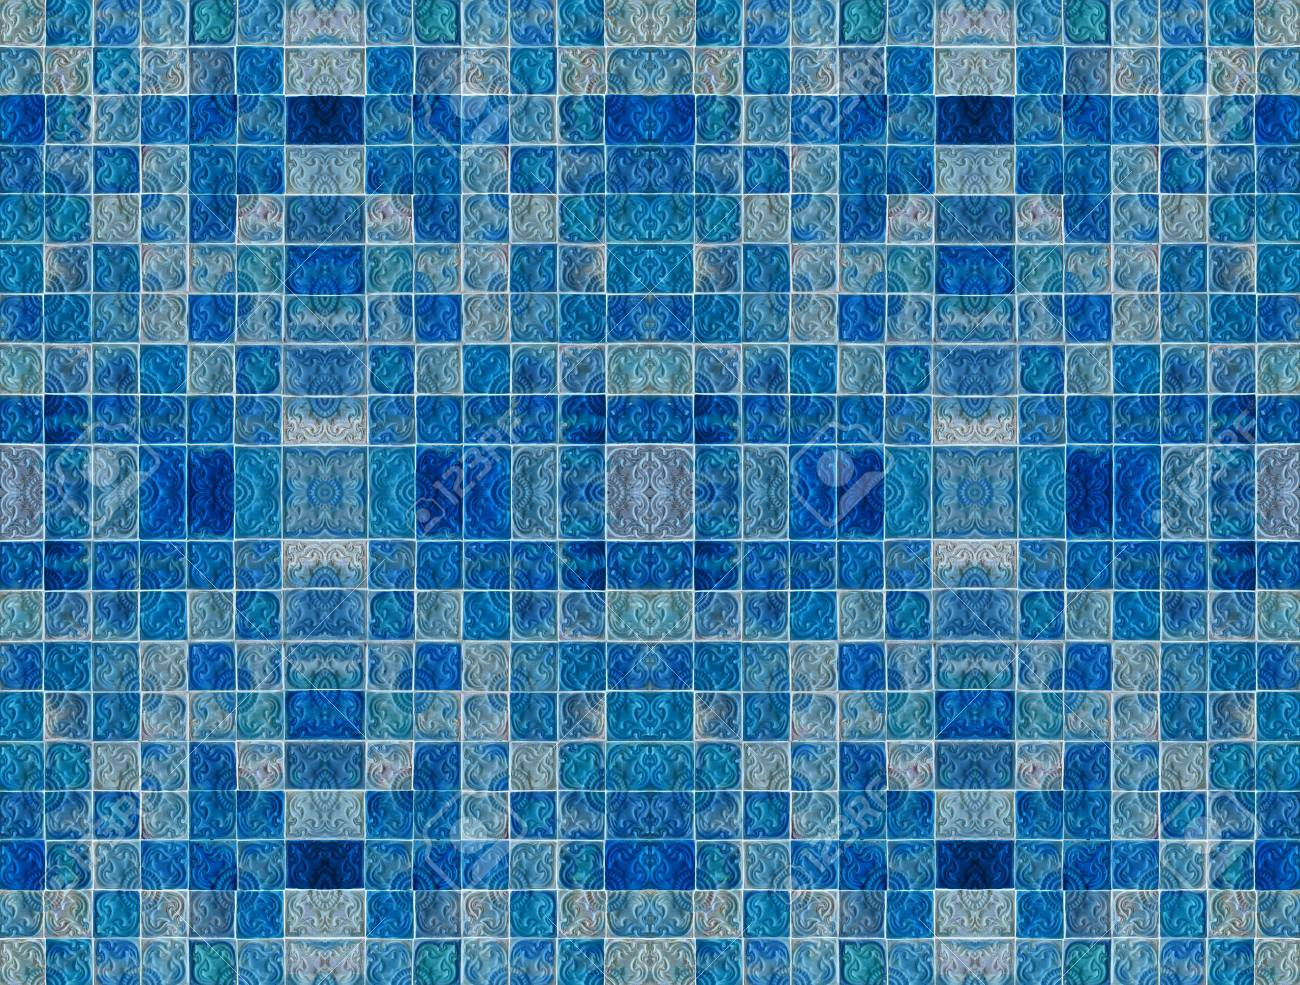 Vintage Ceramic Tiles Wall Decoration Stock Photo, Picture And ...